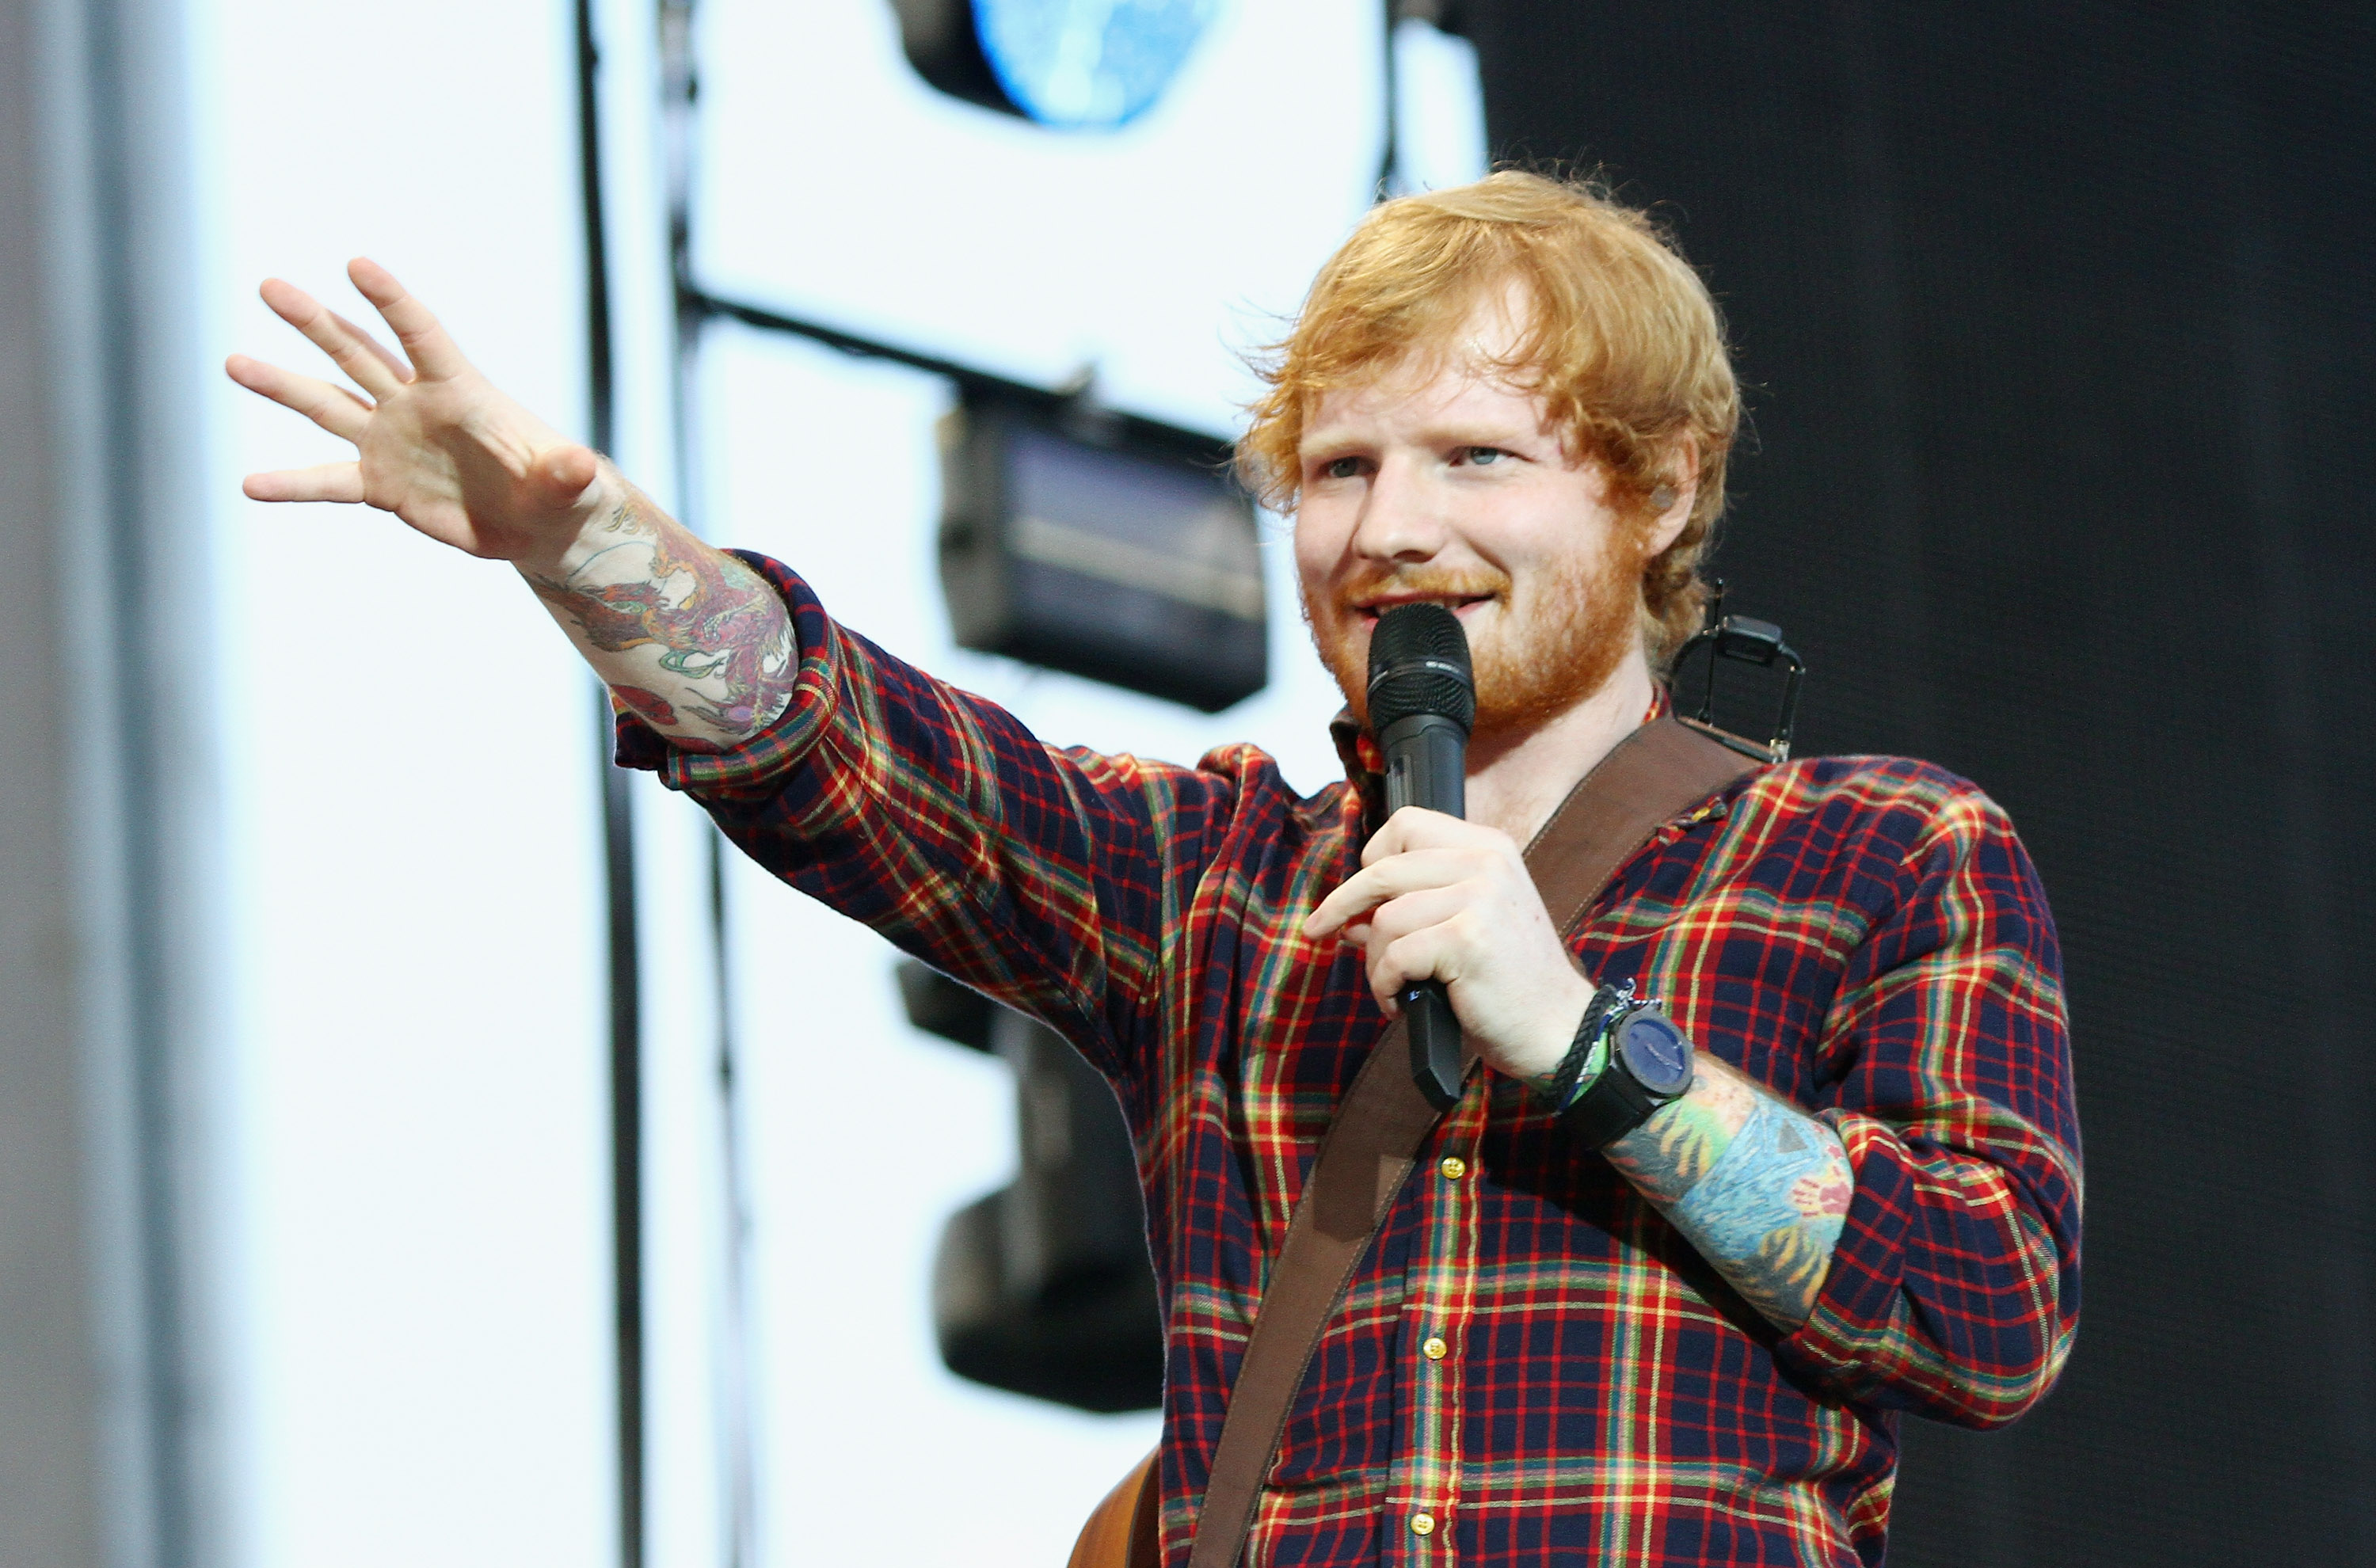 Ed Sheeran performs at Croke Park on July 24, 2015 in Dublin, Ireland.